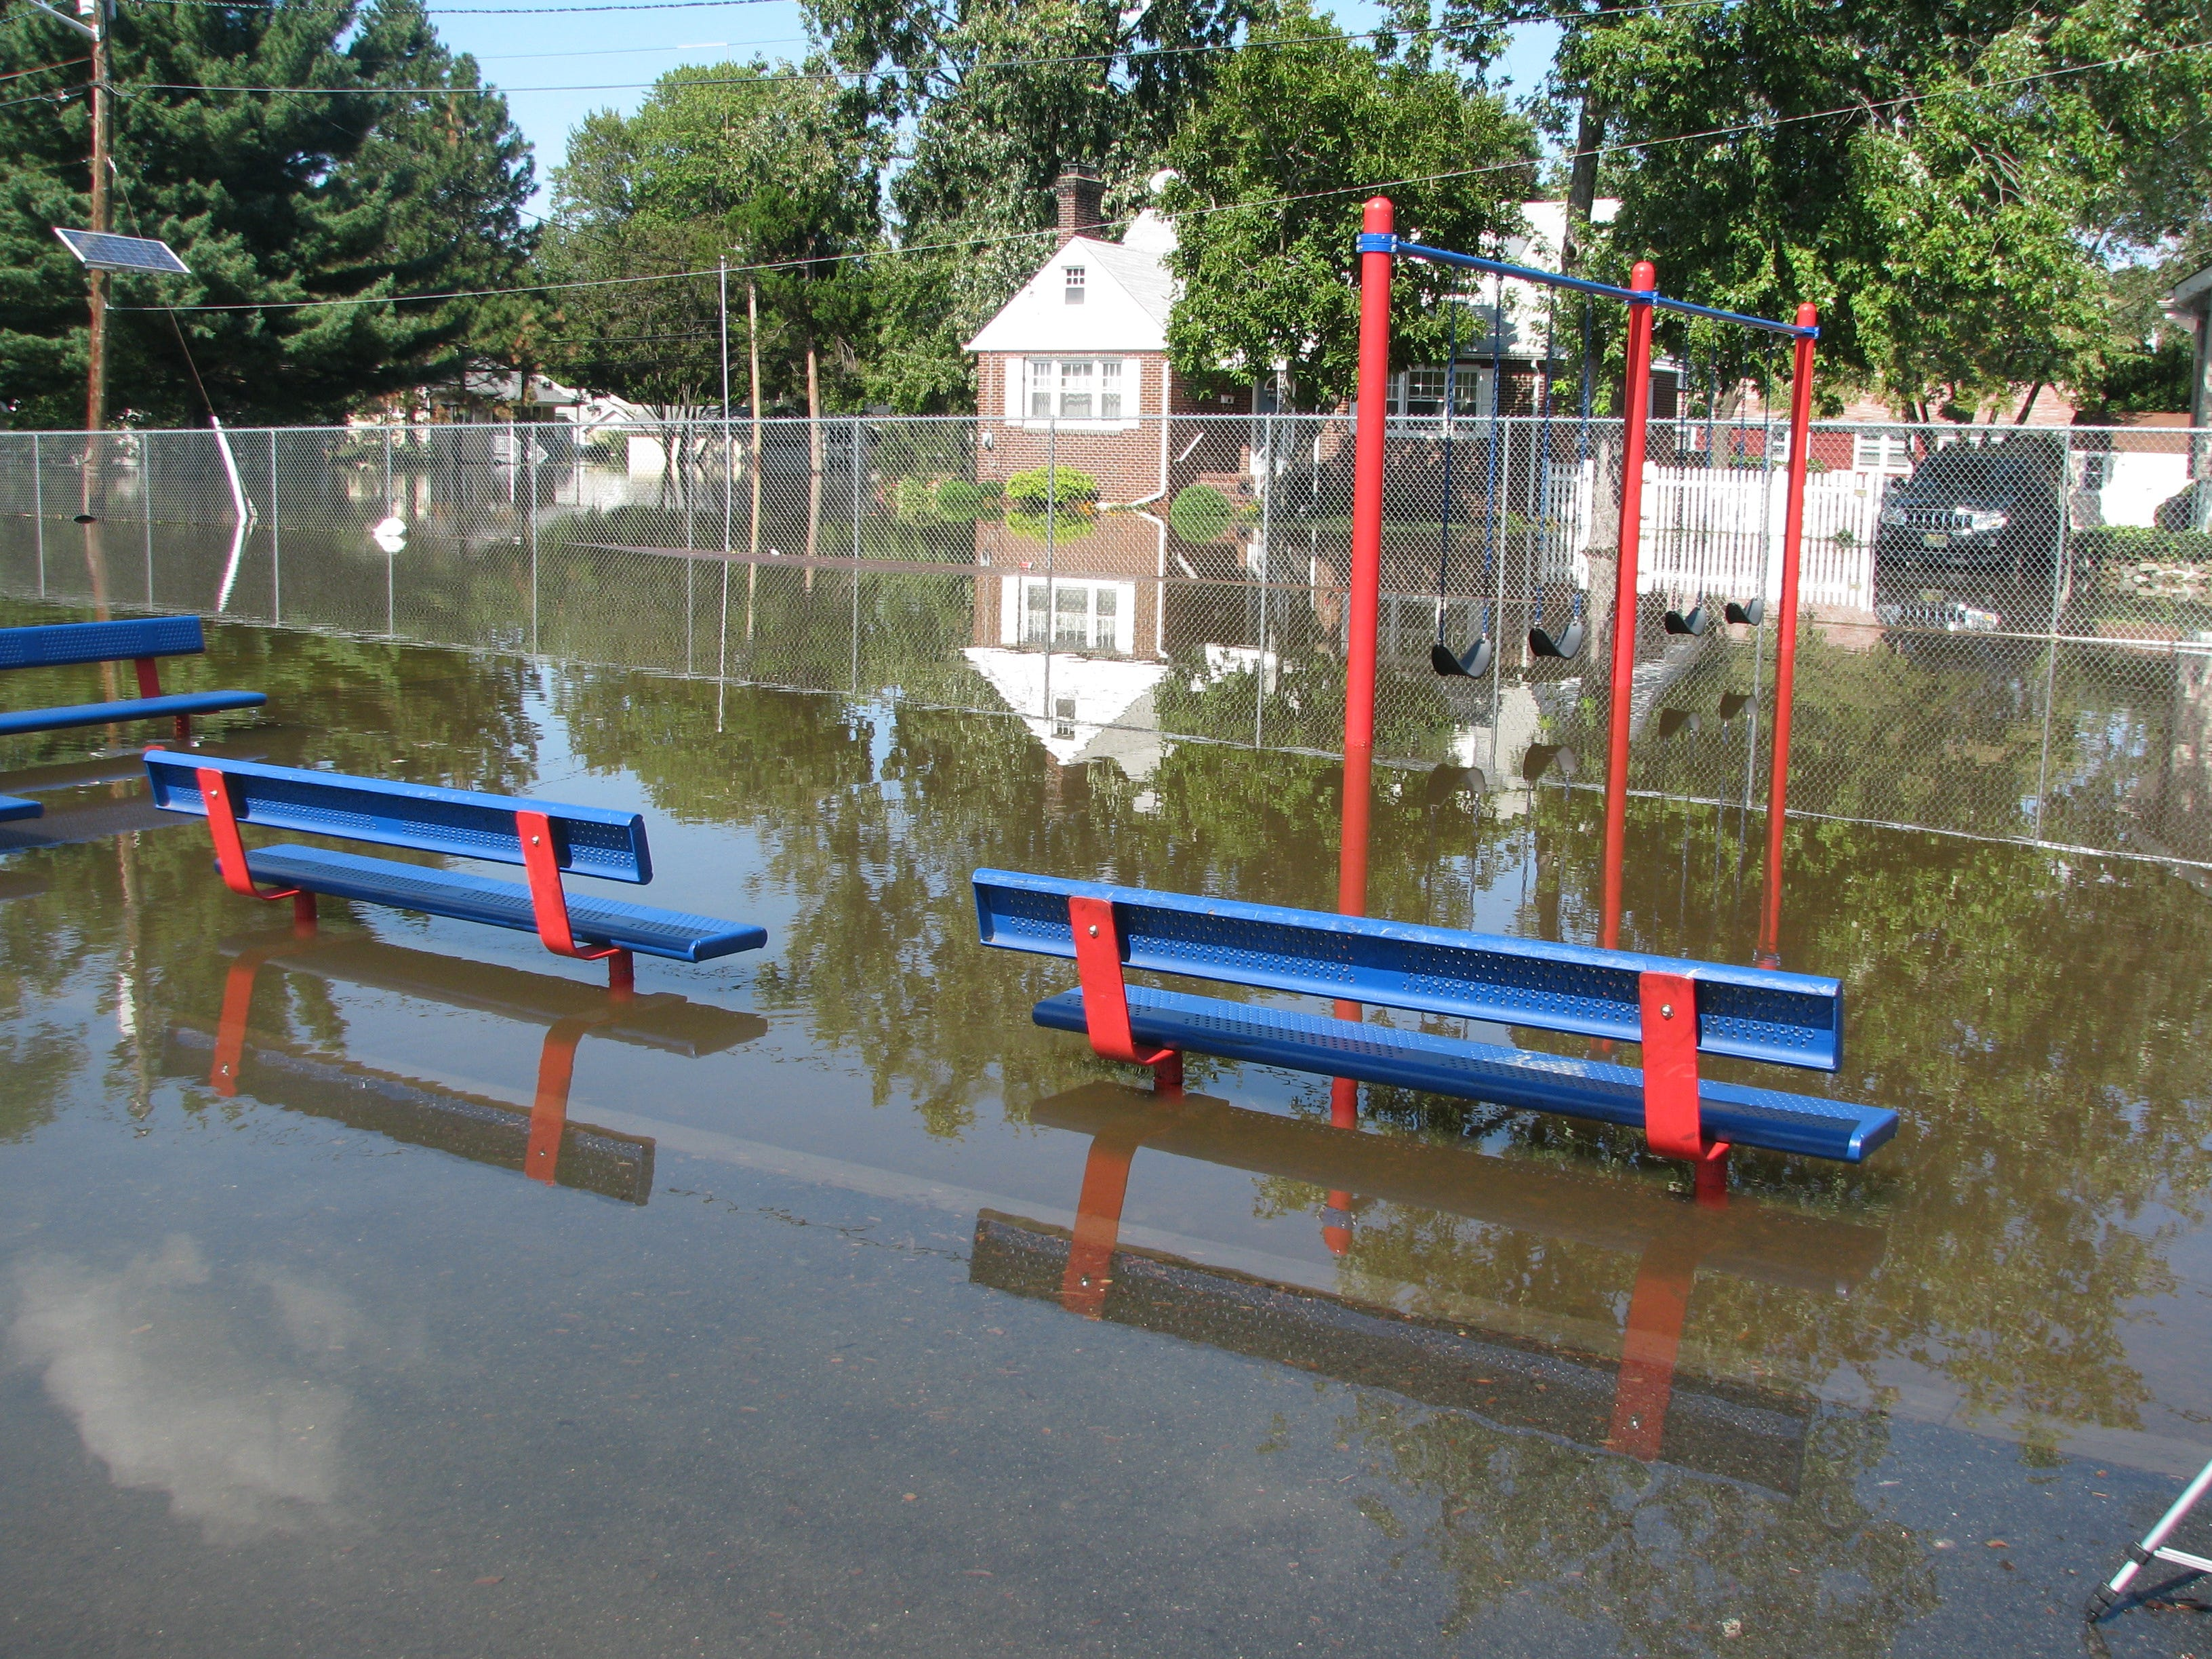 Flooding in Little Falls/Woodland Park following Hurricane Irene in 2011.